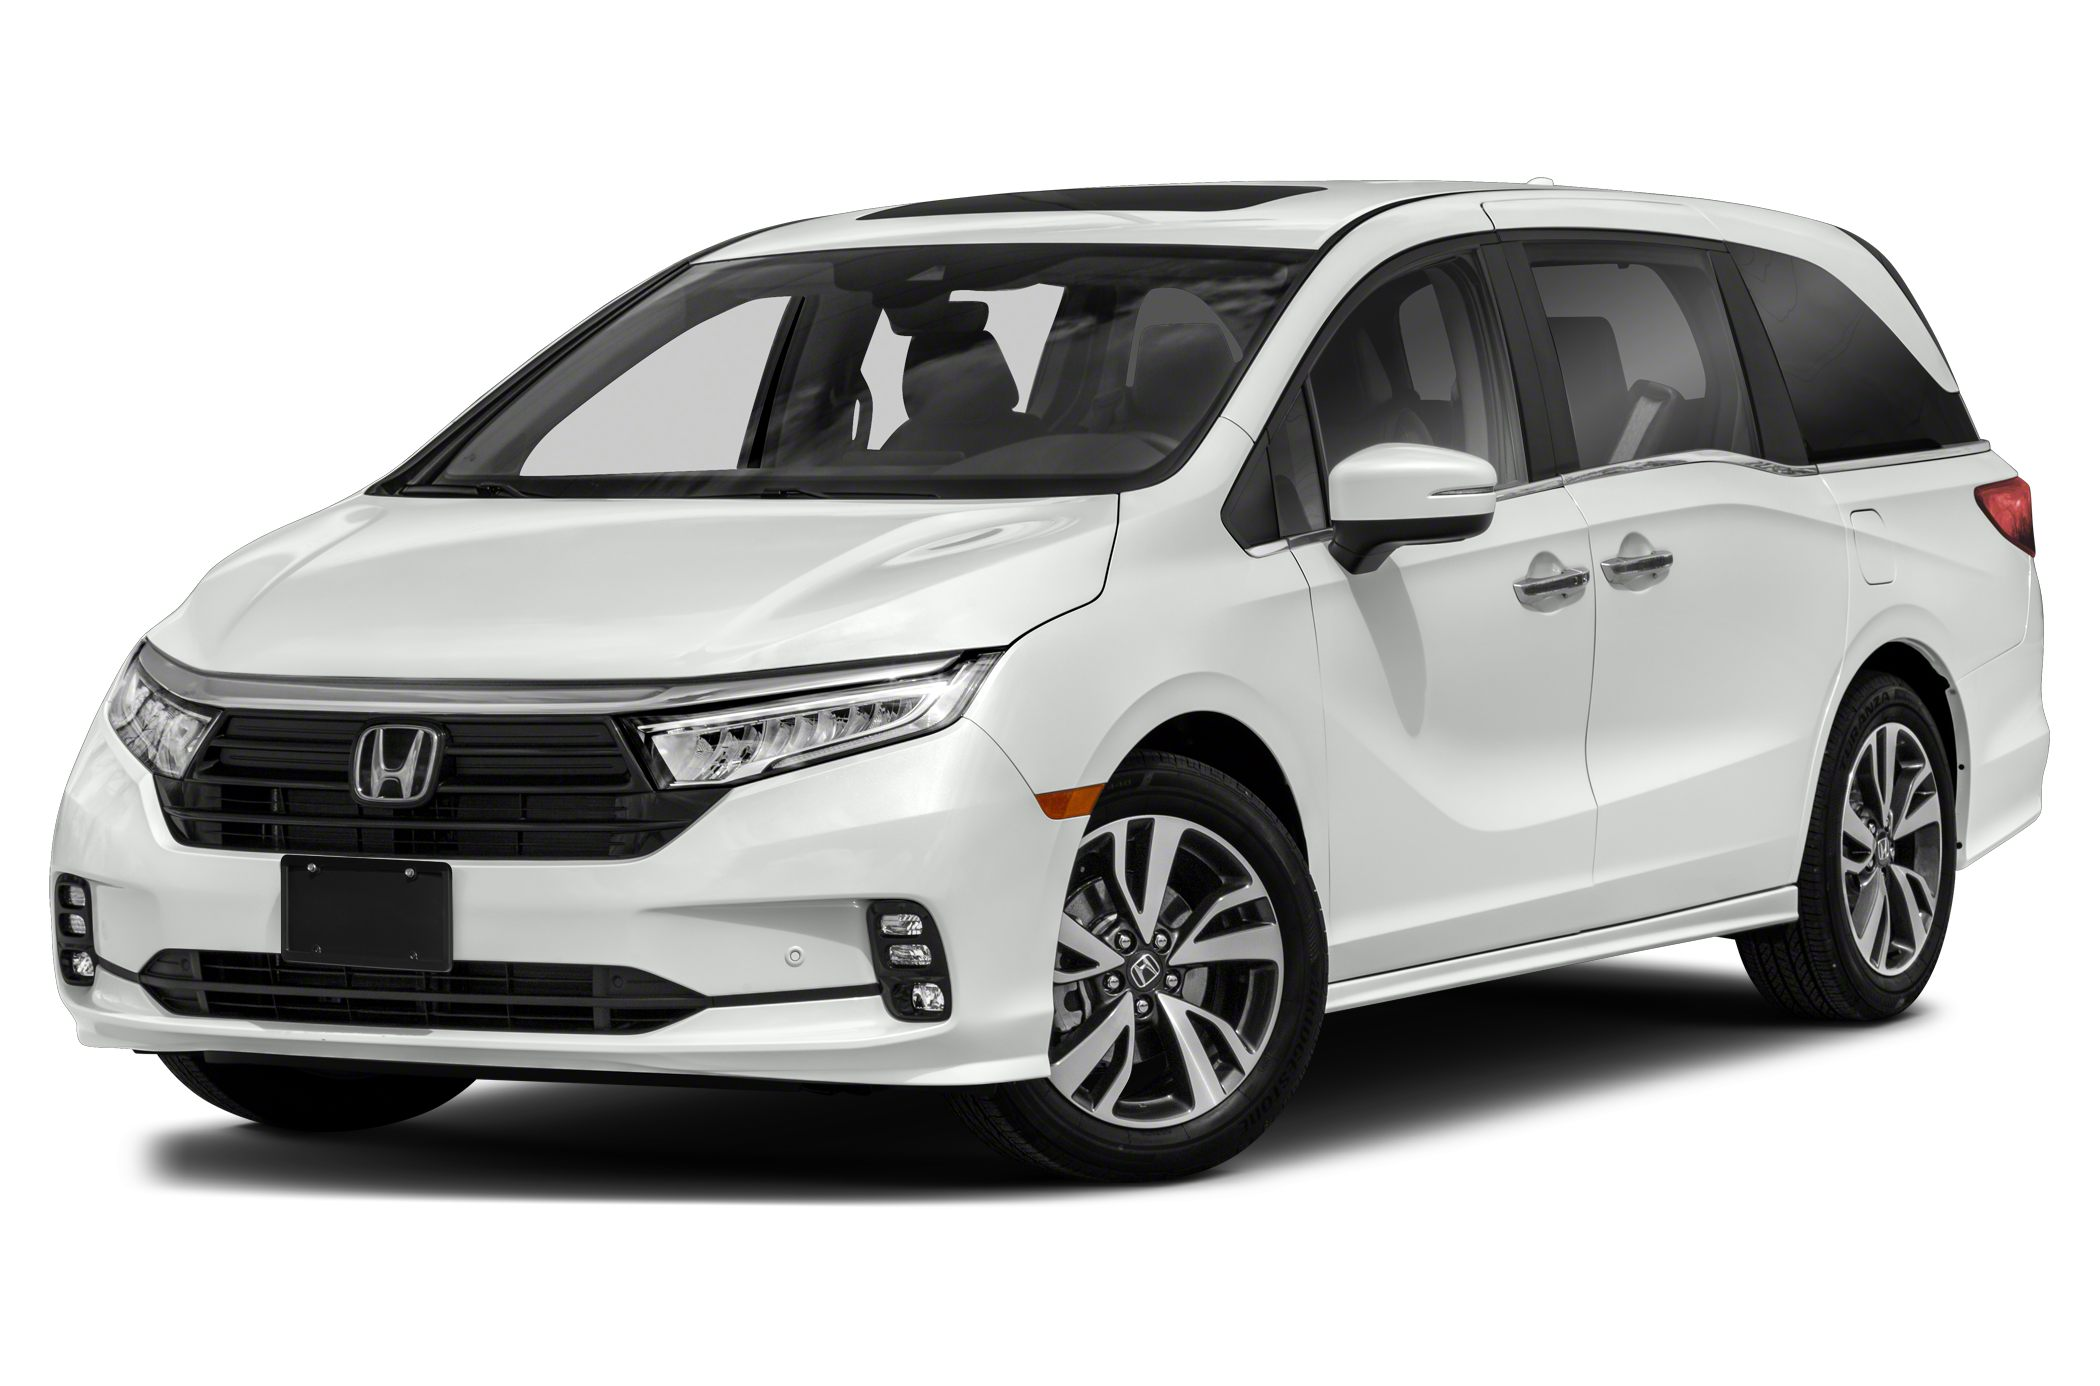 Although today's families are clamoring for crossovers and suvs, the minivan market remains very competitive e. 2021 Honda Odyssey Touring Passenger Van Specs And Prices